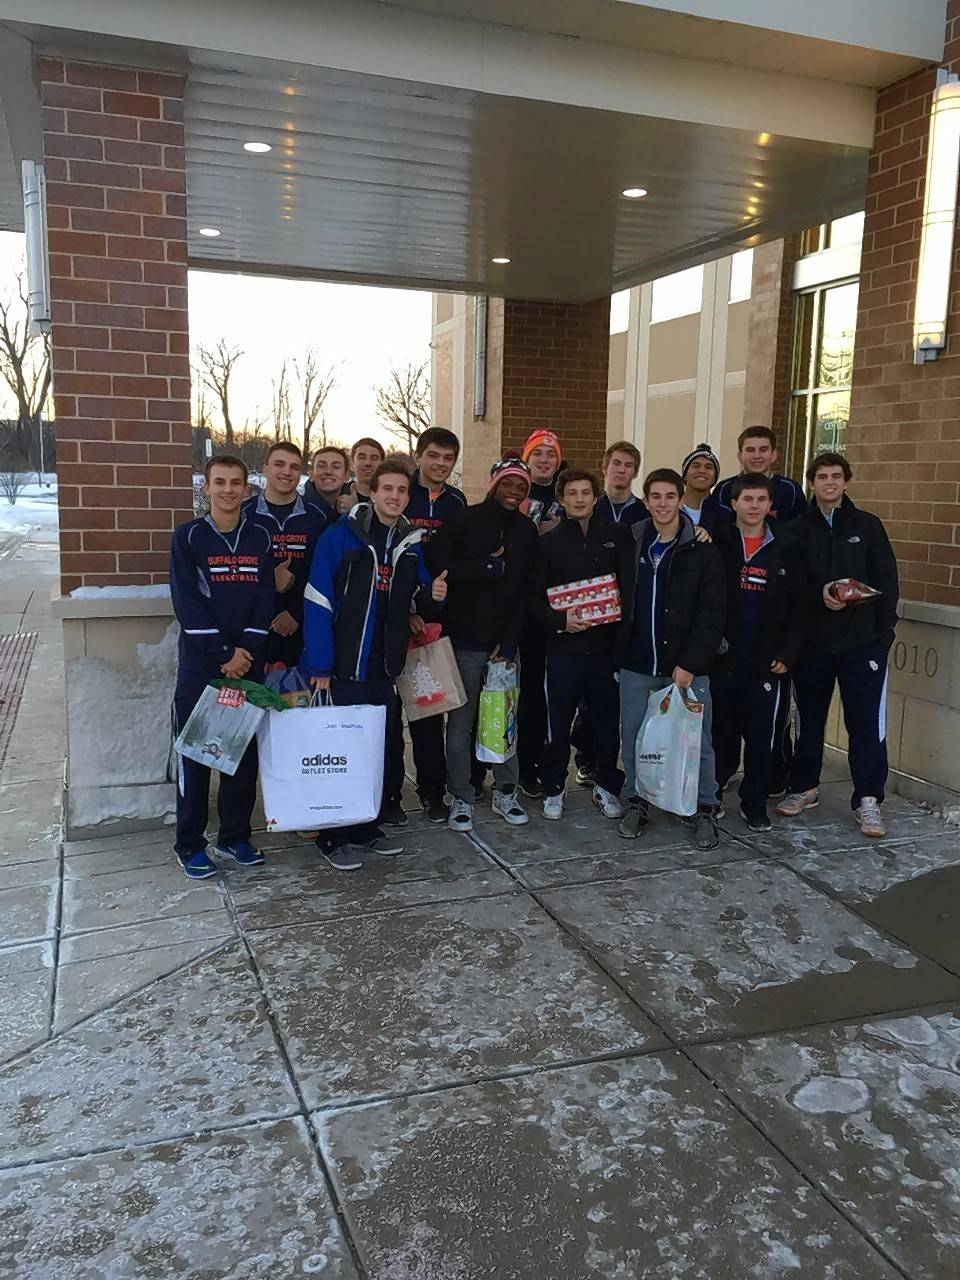 Buffalo Grove's boys basketball team found the spirit of the season, and demonstrated it with a visit to Partners for our Communities in Palatine.